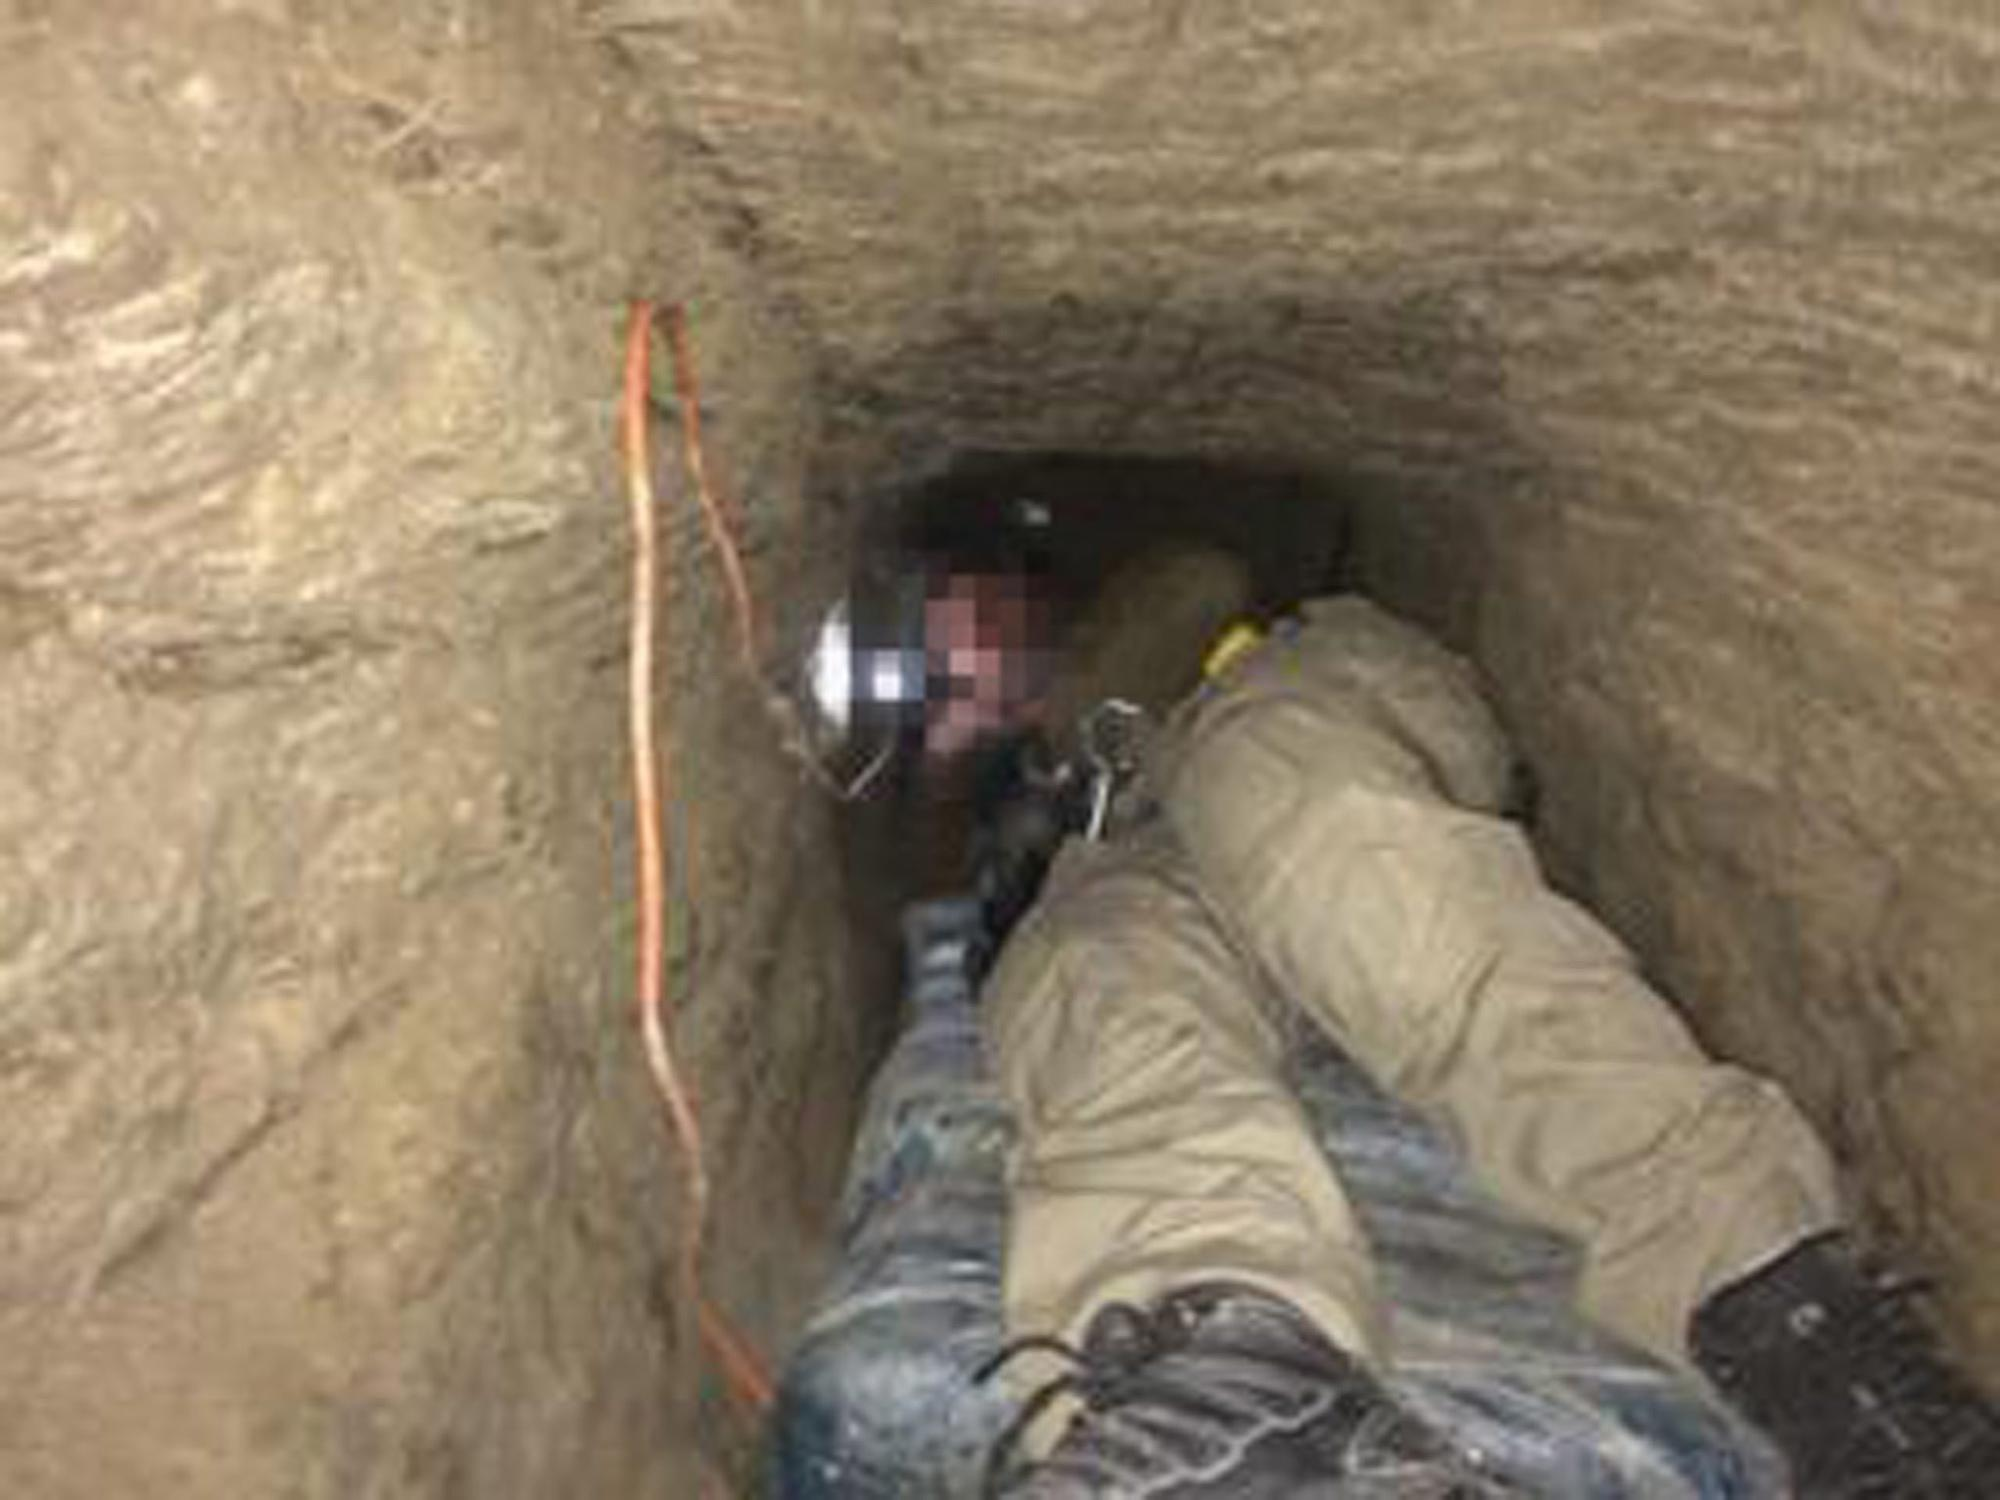 A narrow passageway of what is believed to be the longest cross-border tunnel discovered along the California-Mexico border,